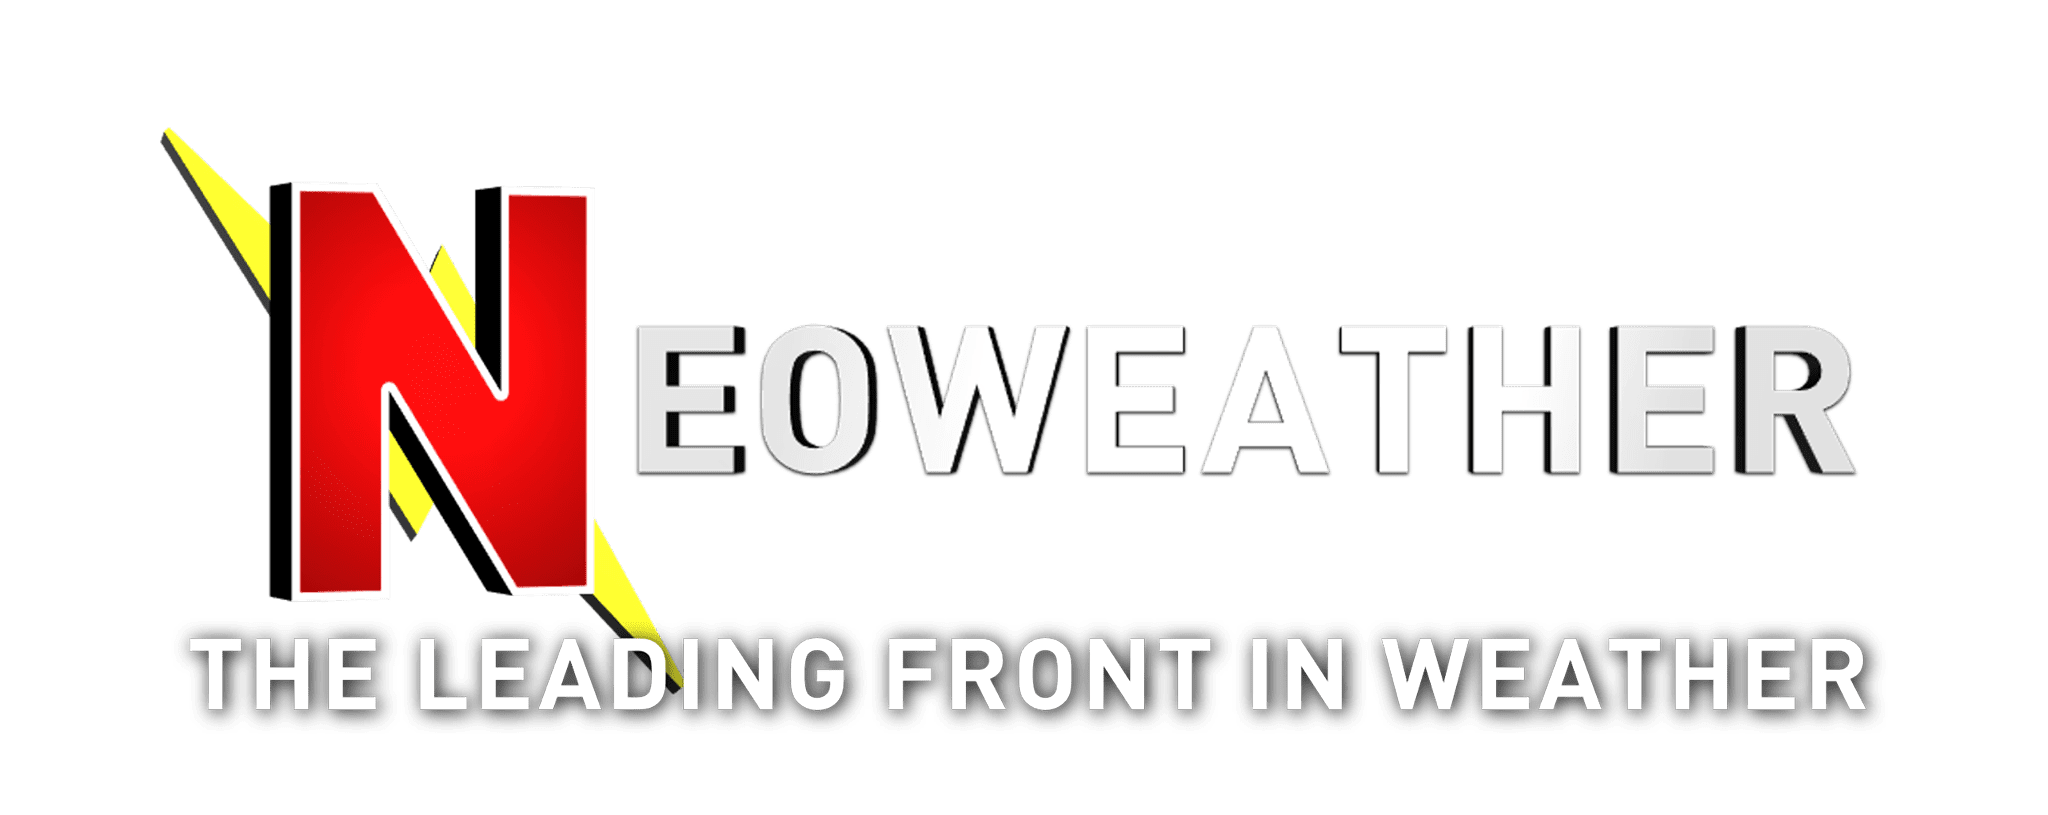 Neoweather - The Leading Front in Weather